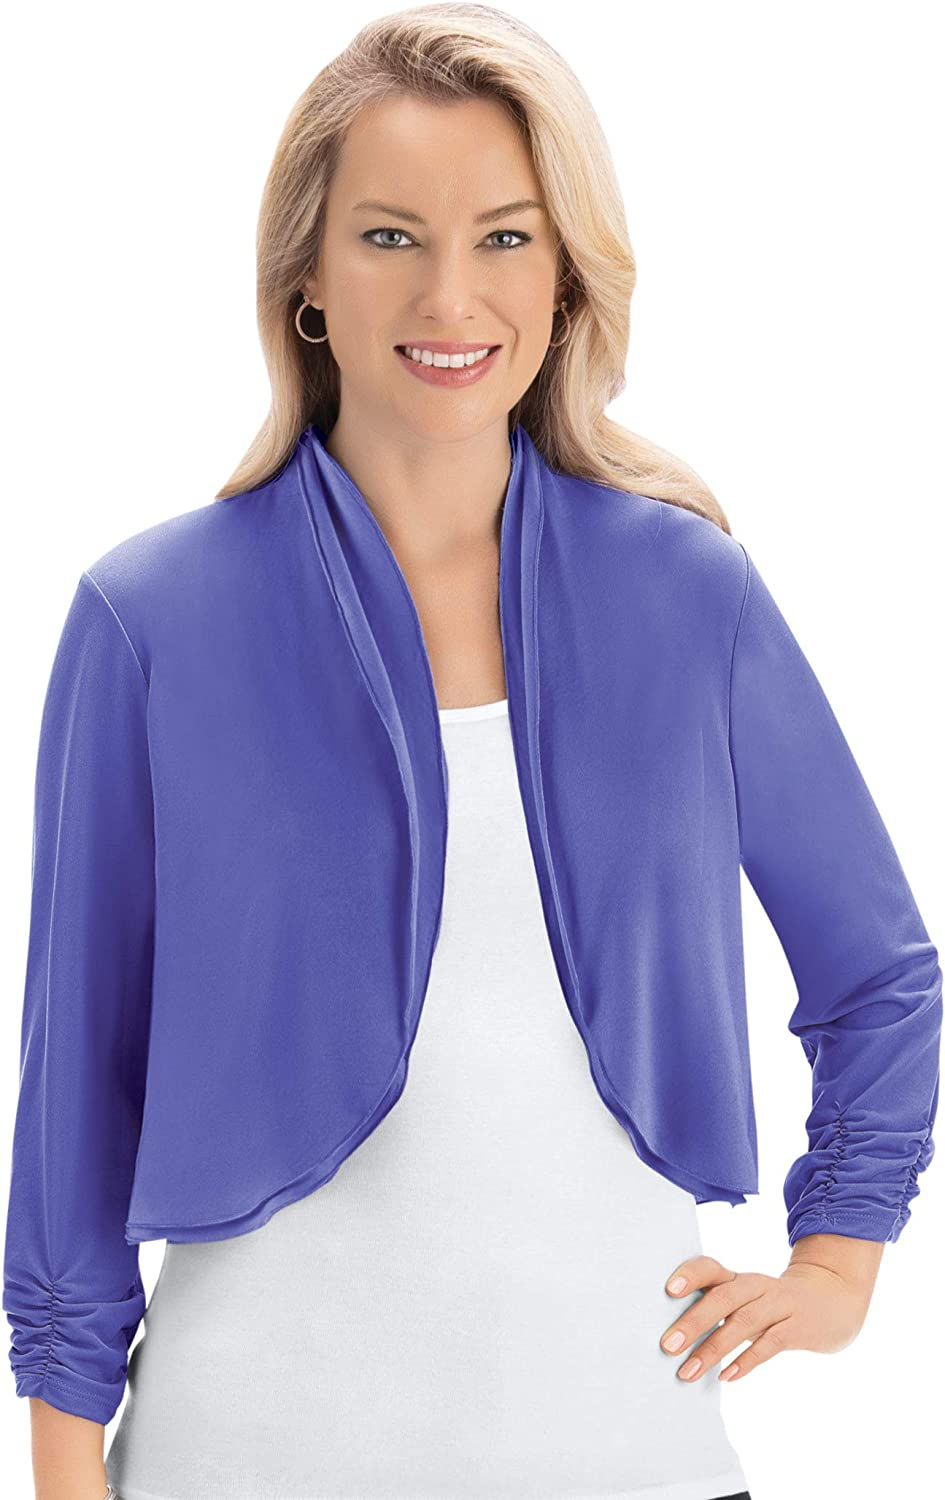 Cinched Sleeve Open Front Layering Cardigan Shrug Top for Wearing with Dresses & Tank Tops